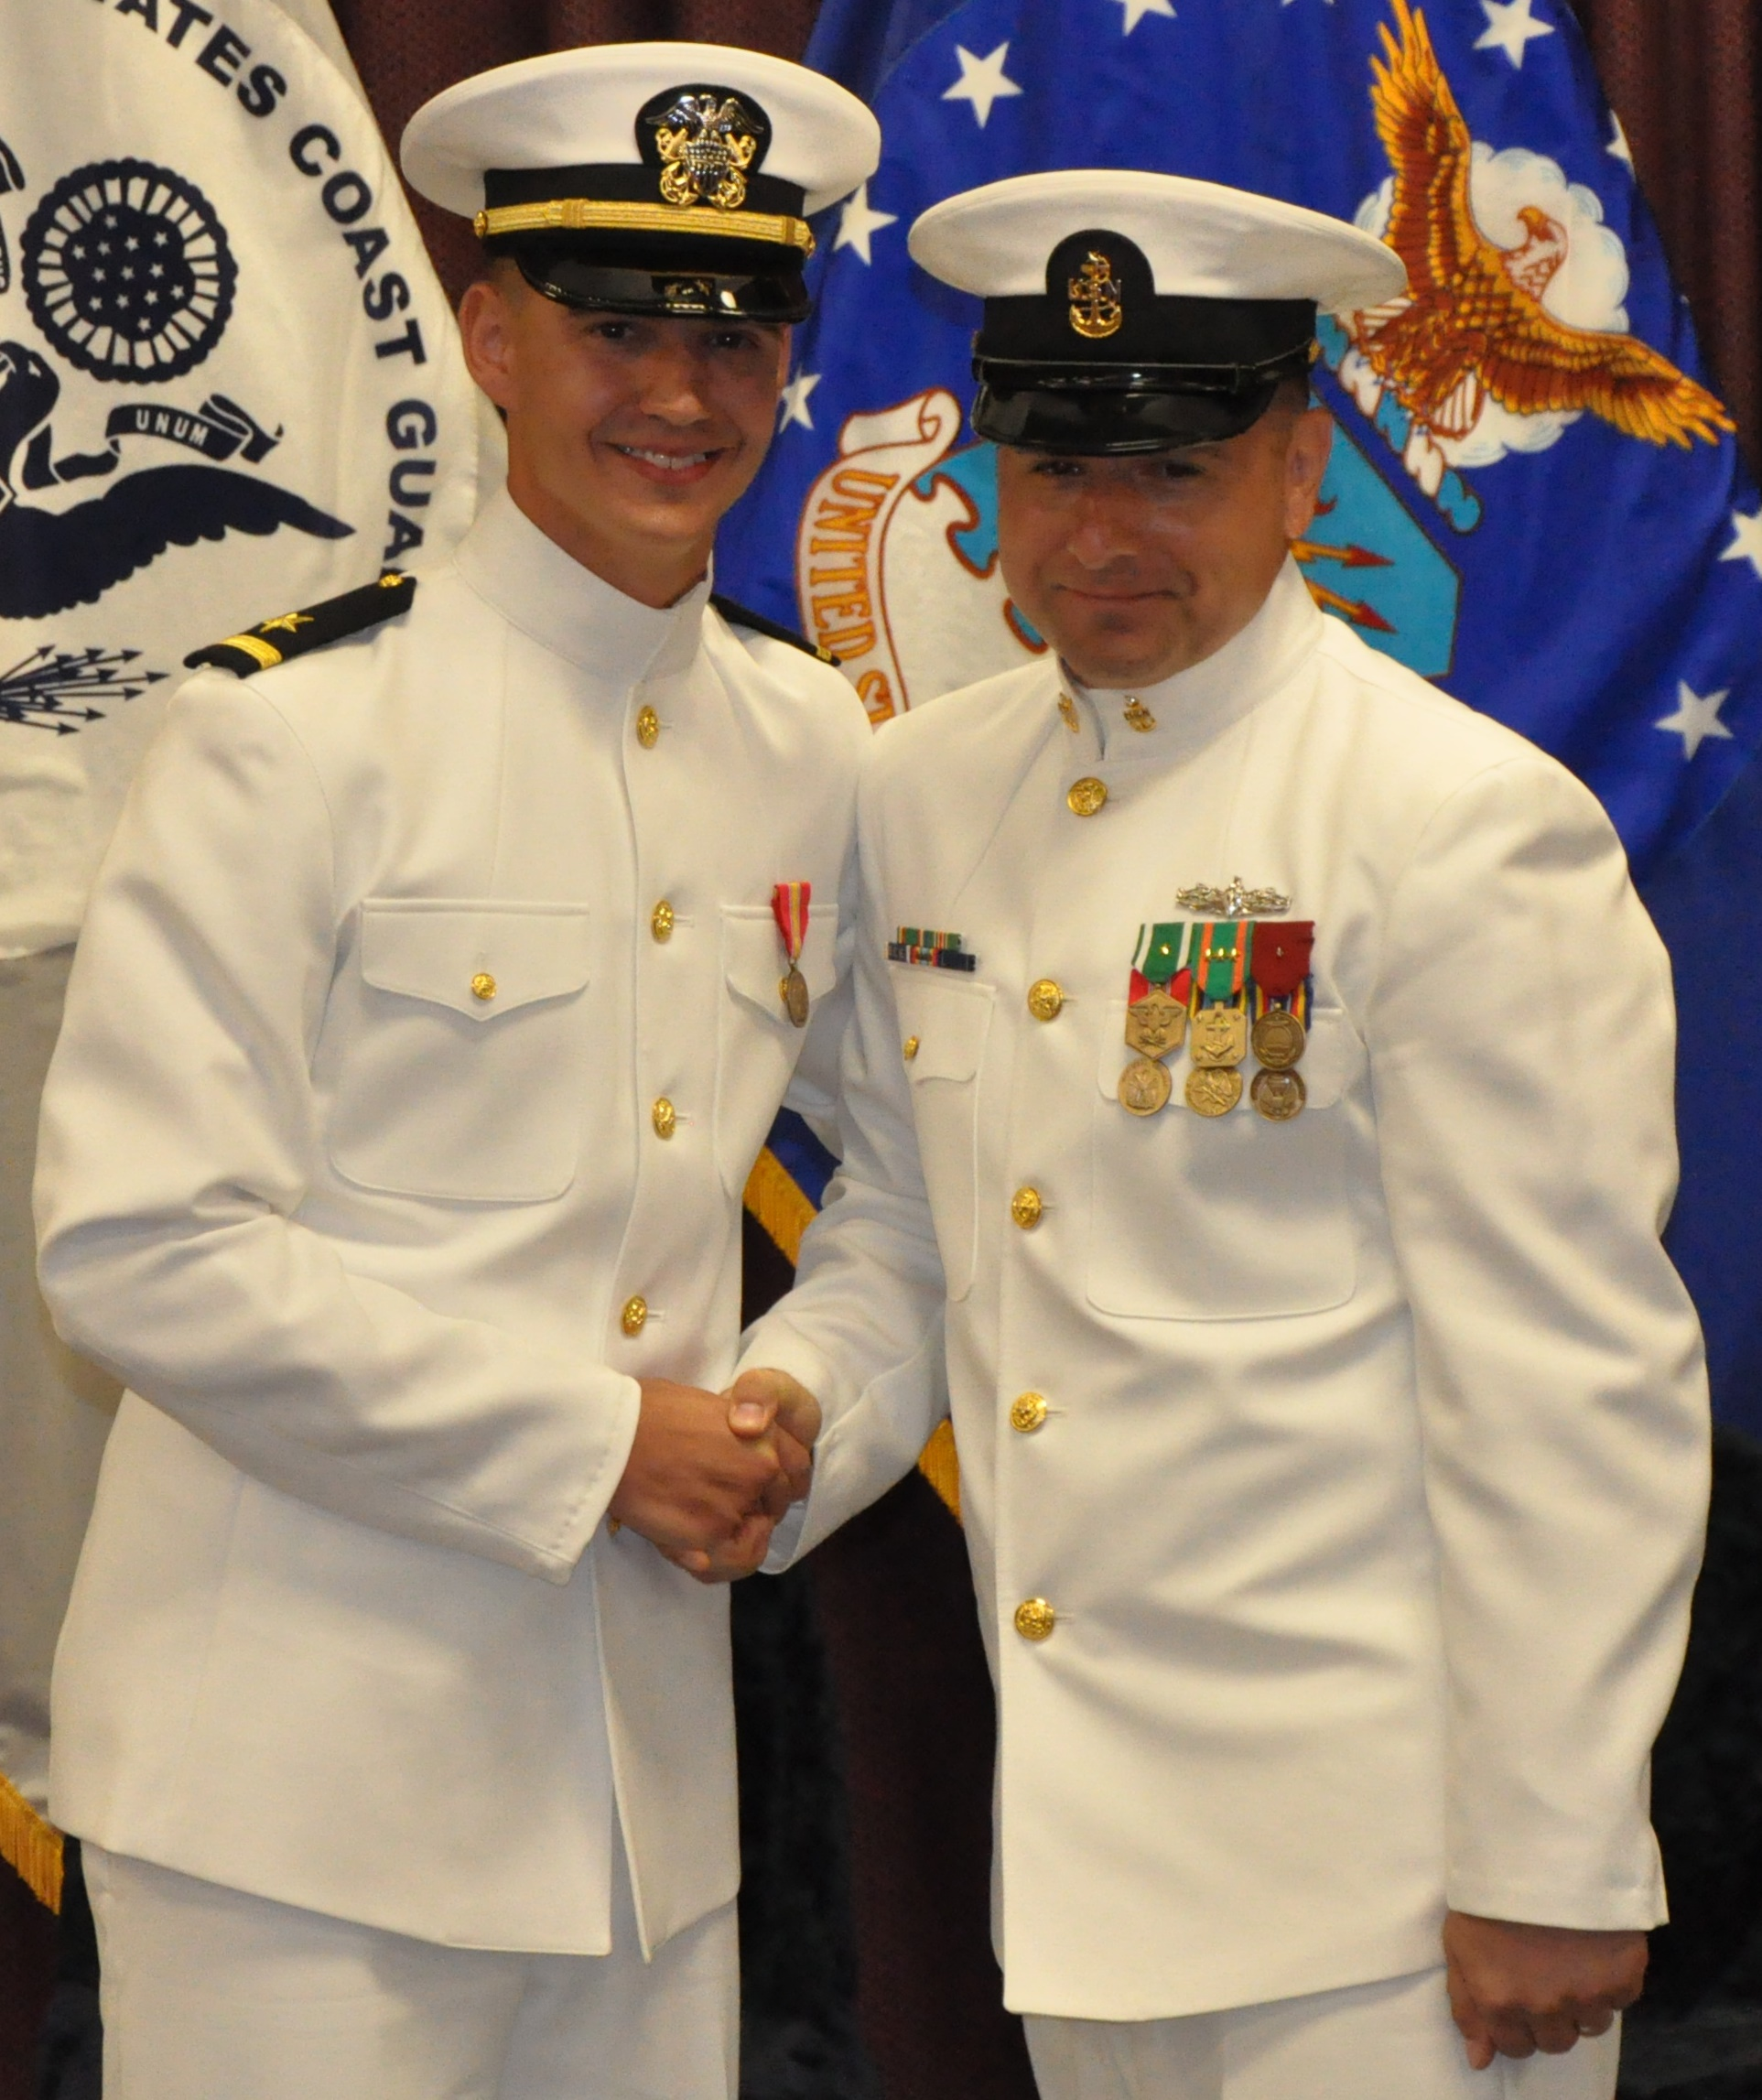 Nswc Civilian Engineer Commissioned Into The Naval Reserve